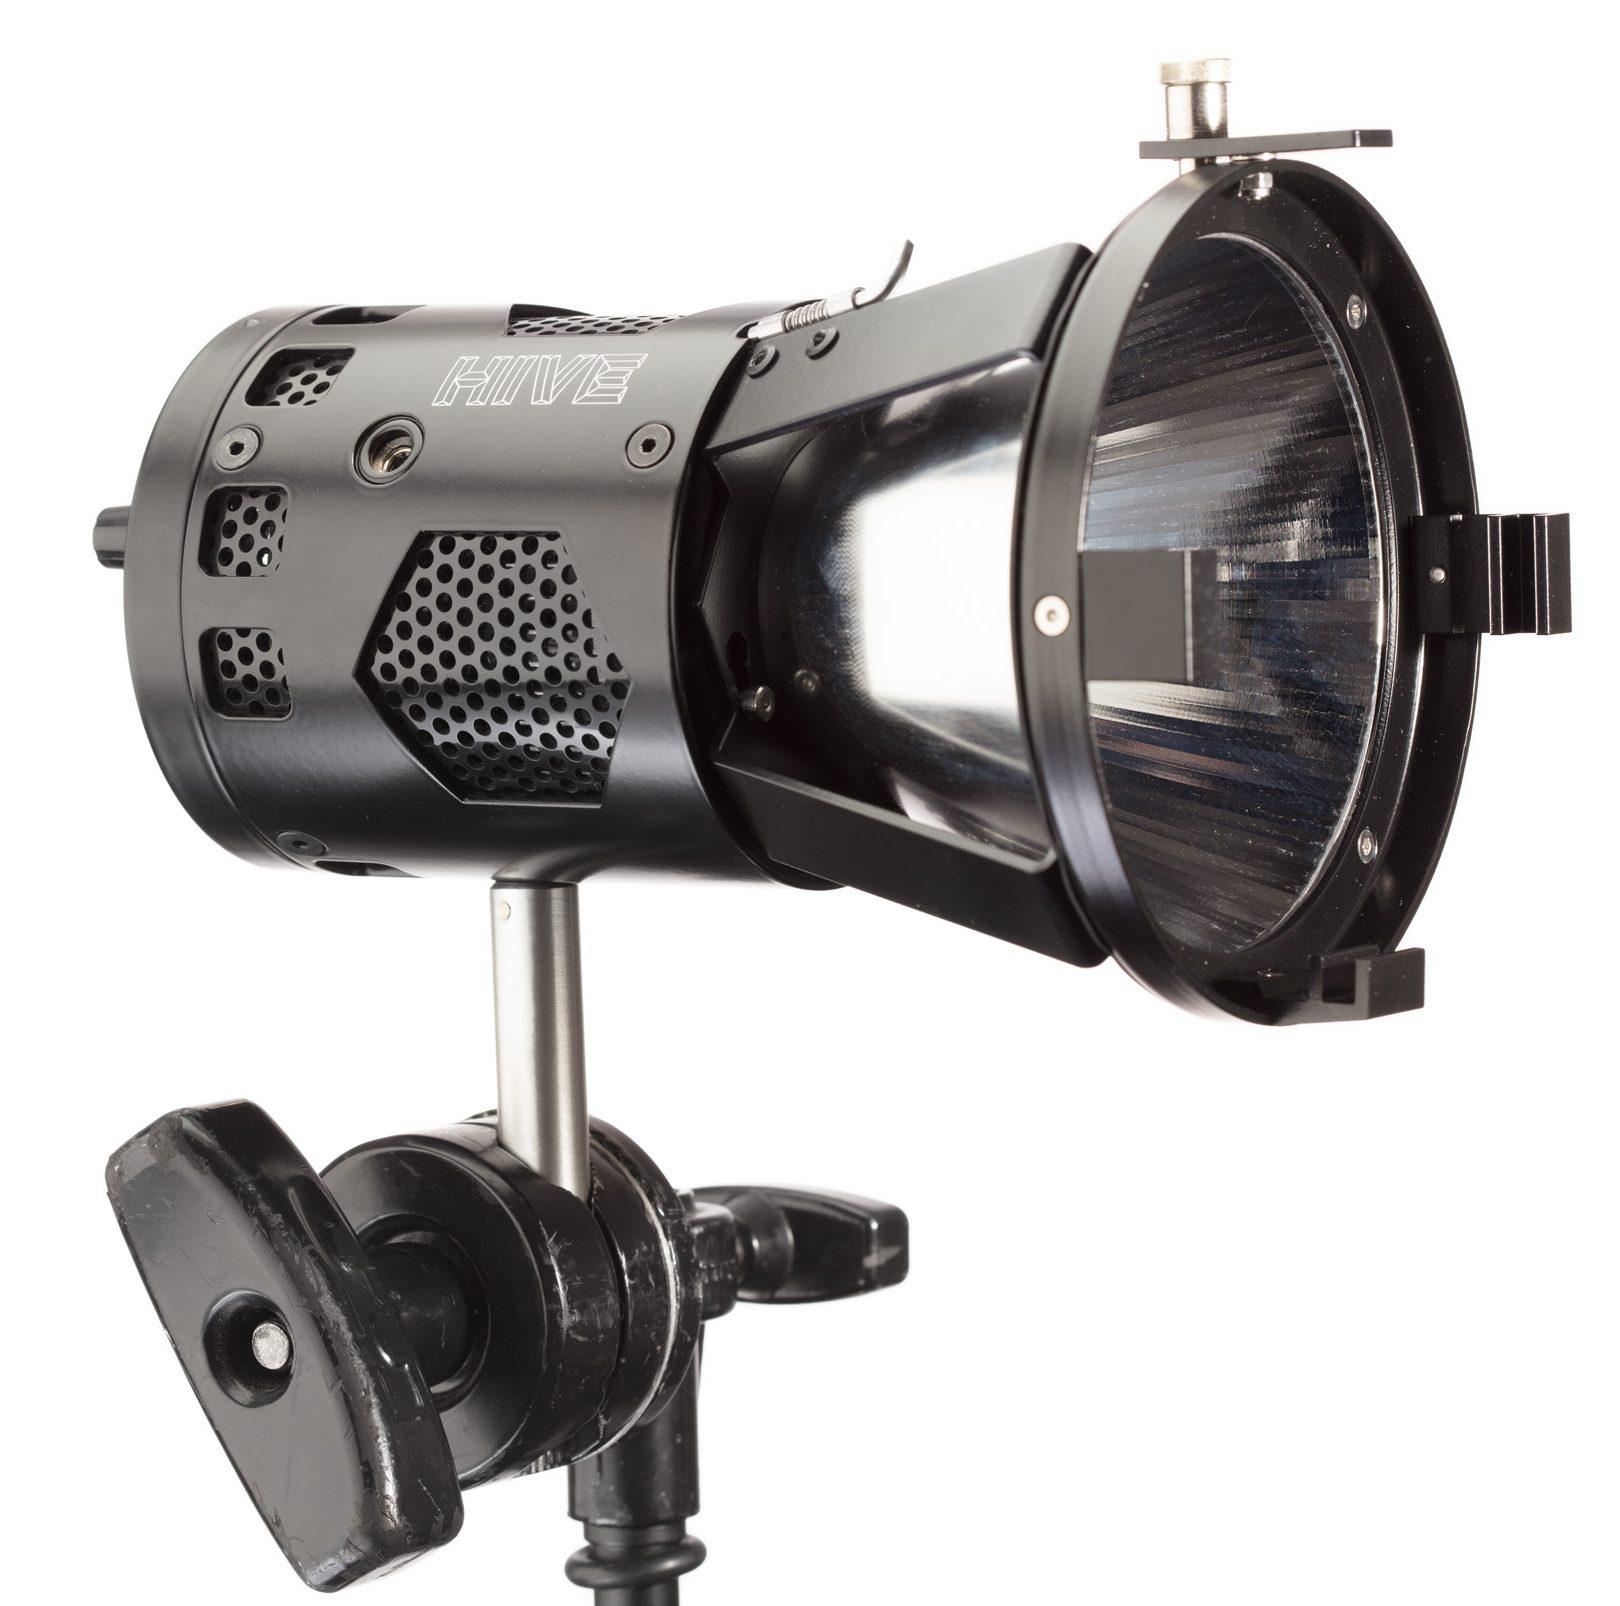 light camera smarter griplighting equipment learn film leasing from offers to leases suppliers grip clipart access more photography and lighting companies premier kwipped rentals affordable